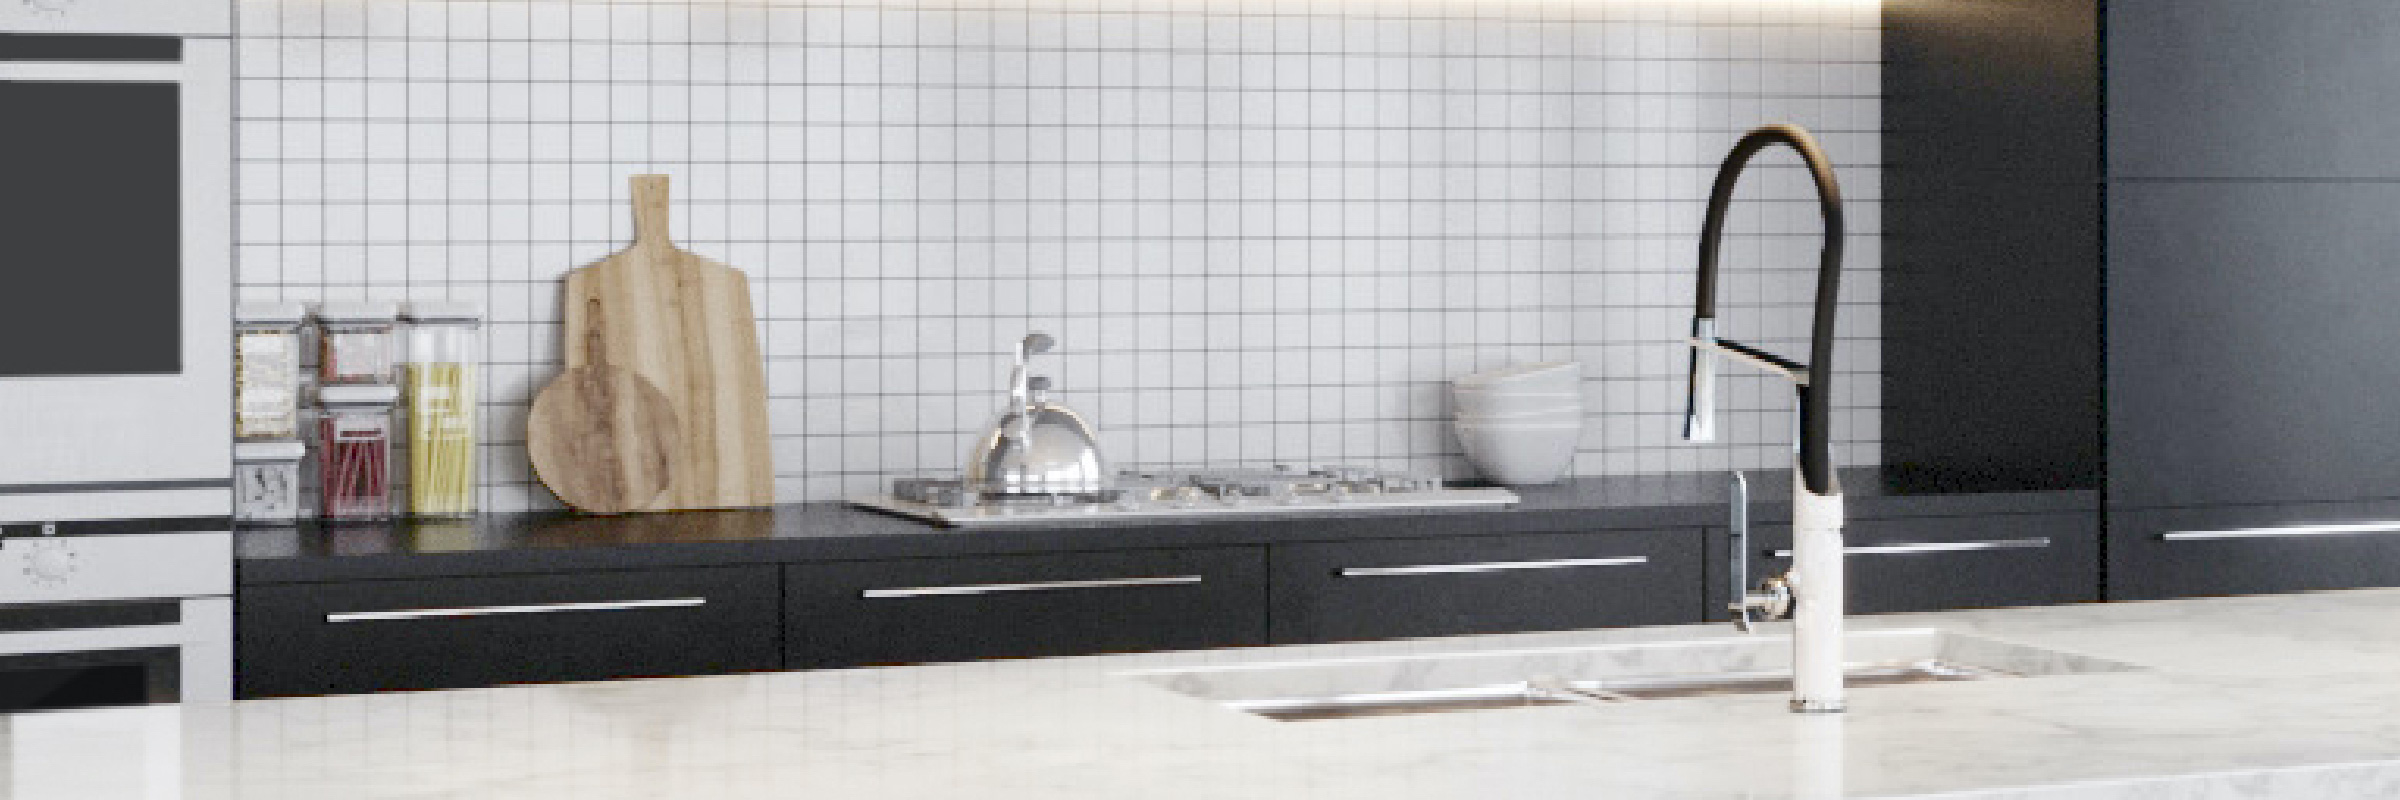 Kitchen faucet in matte black and white